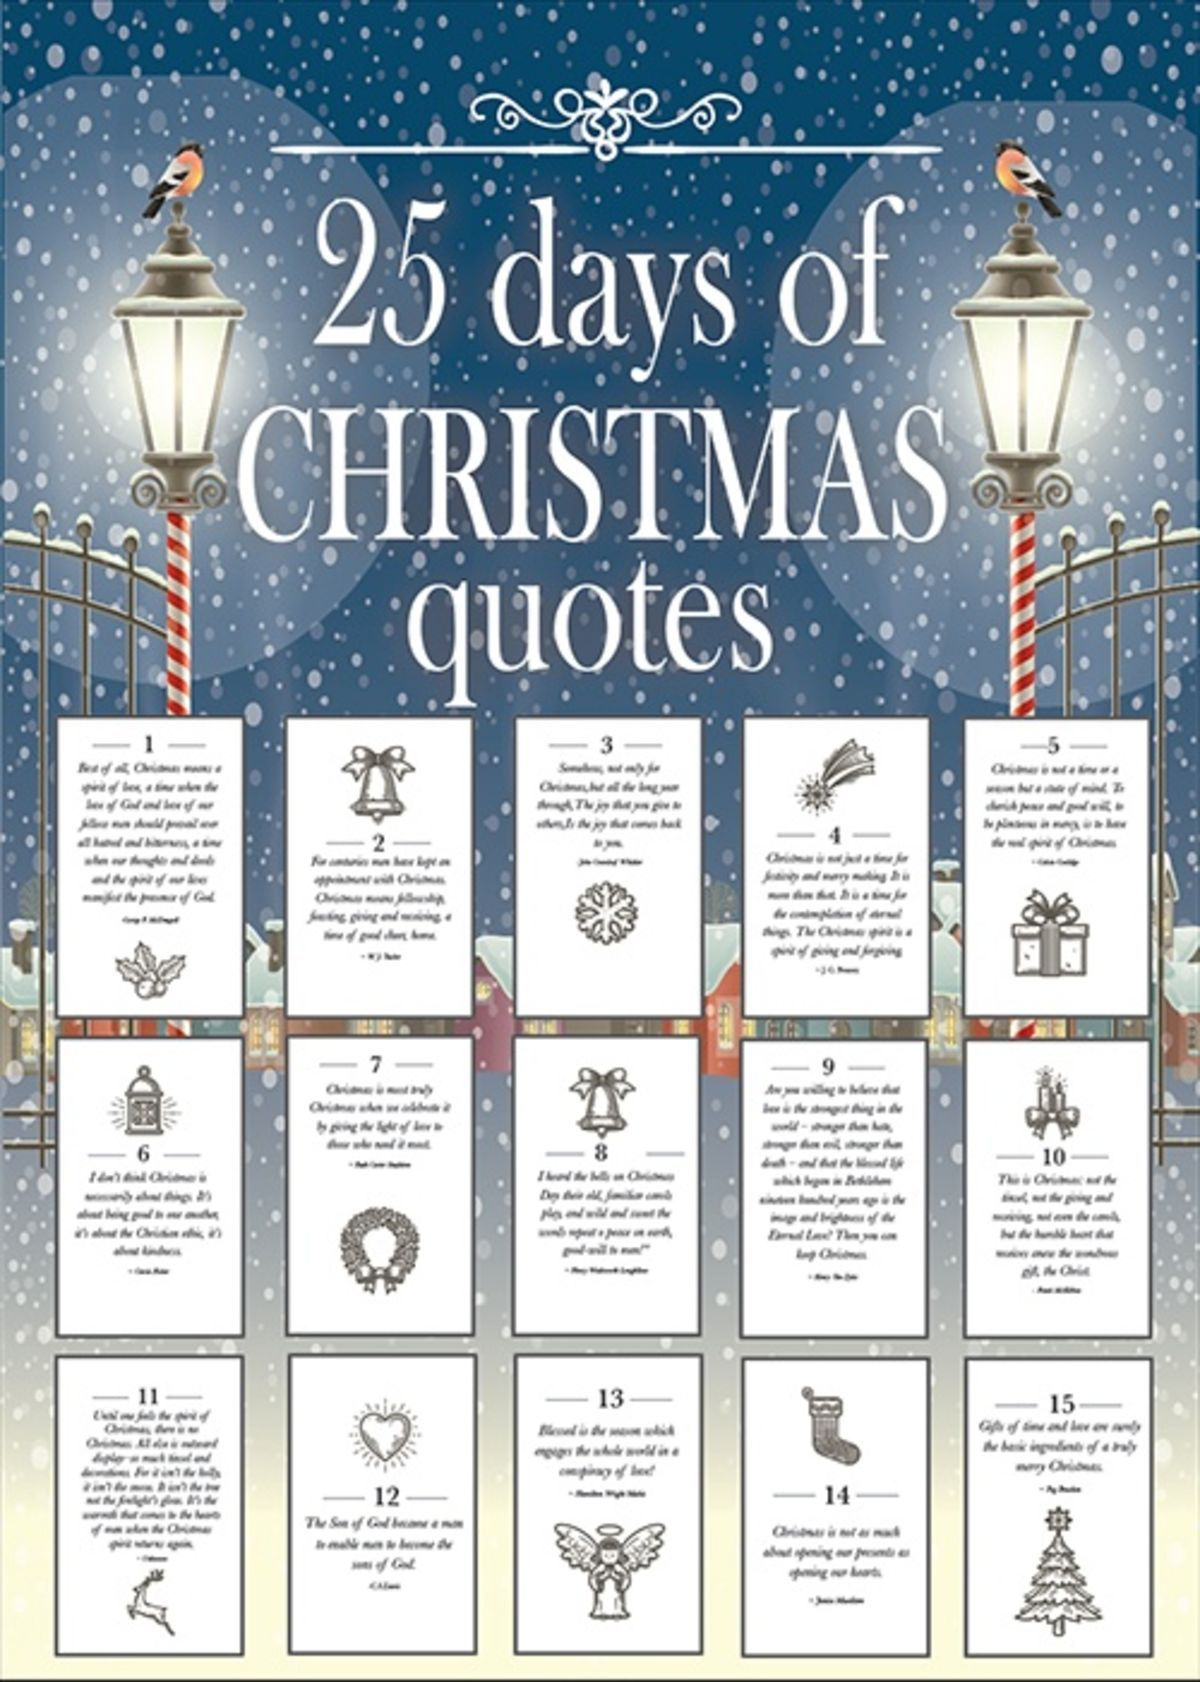 25 Days of Christmas Quotes (With images) Christmas